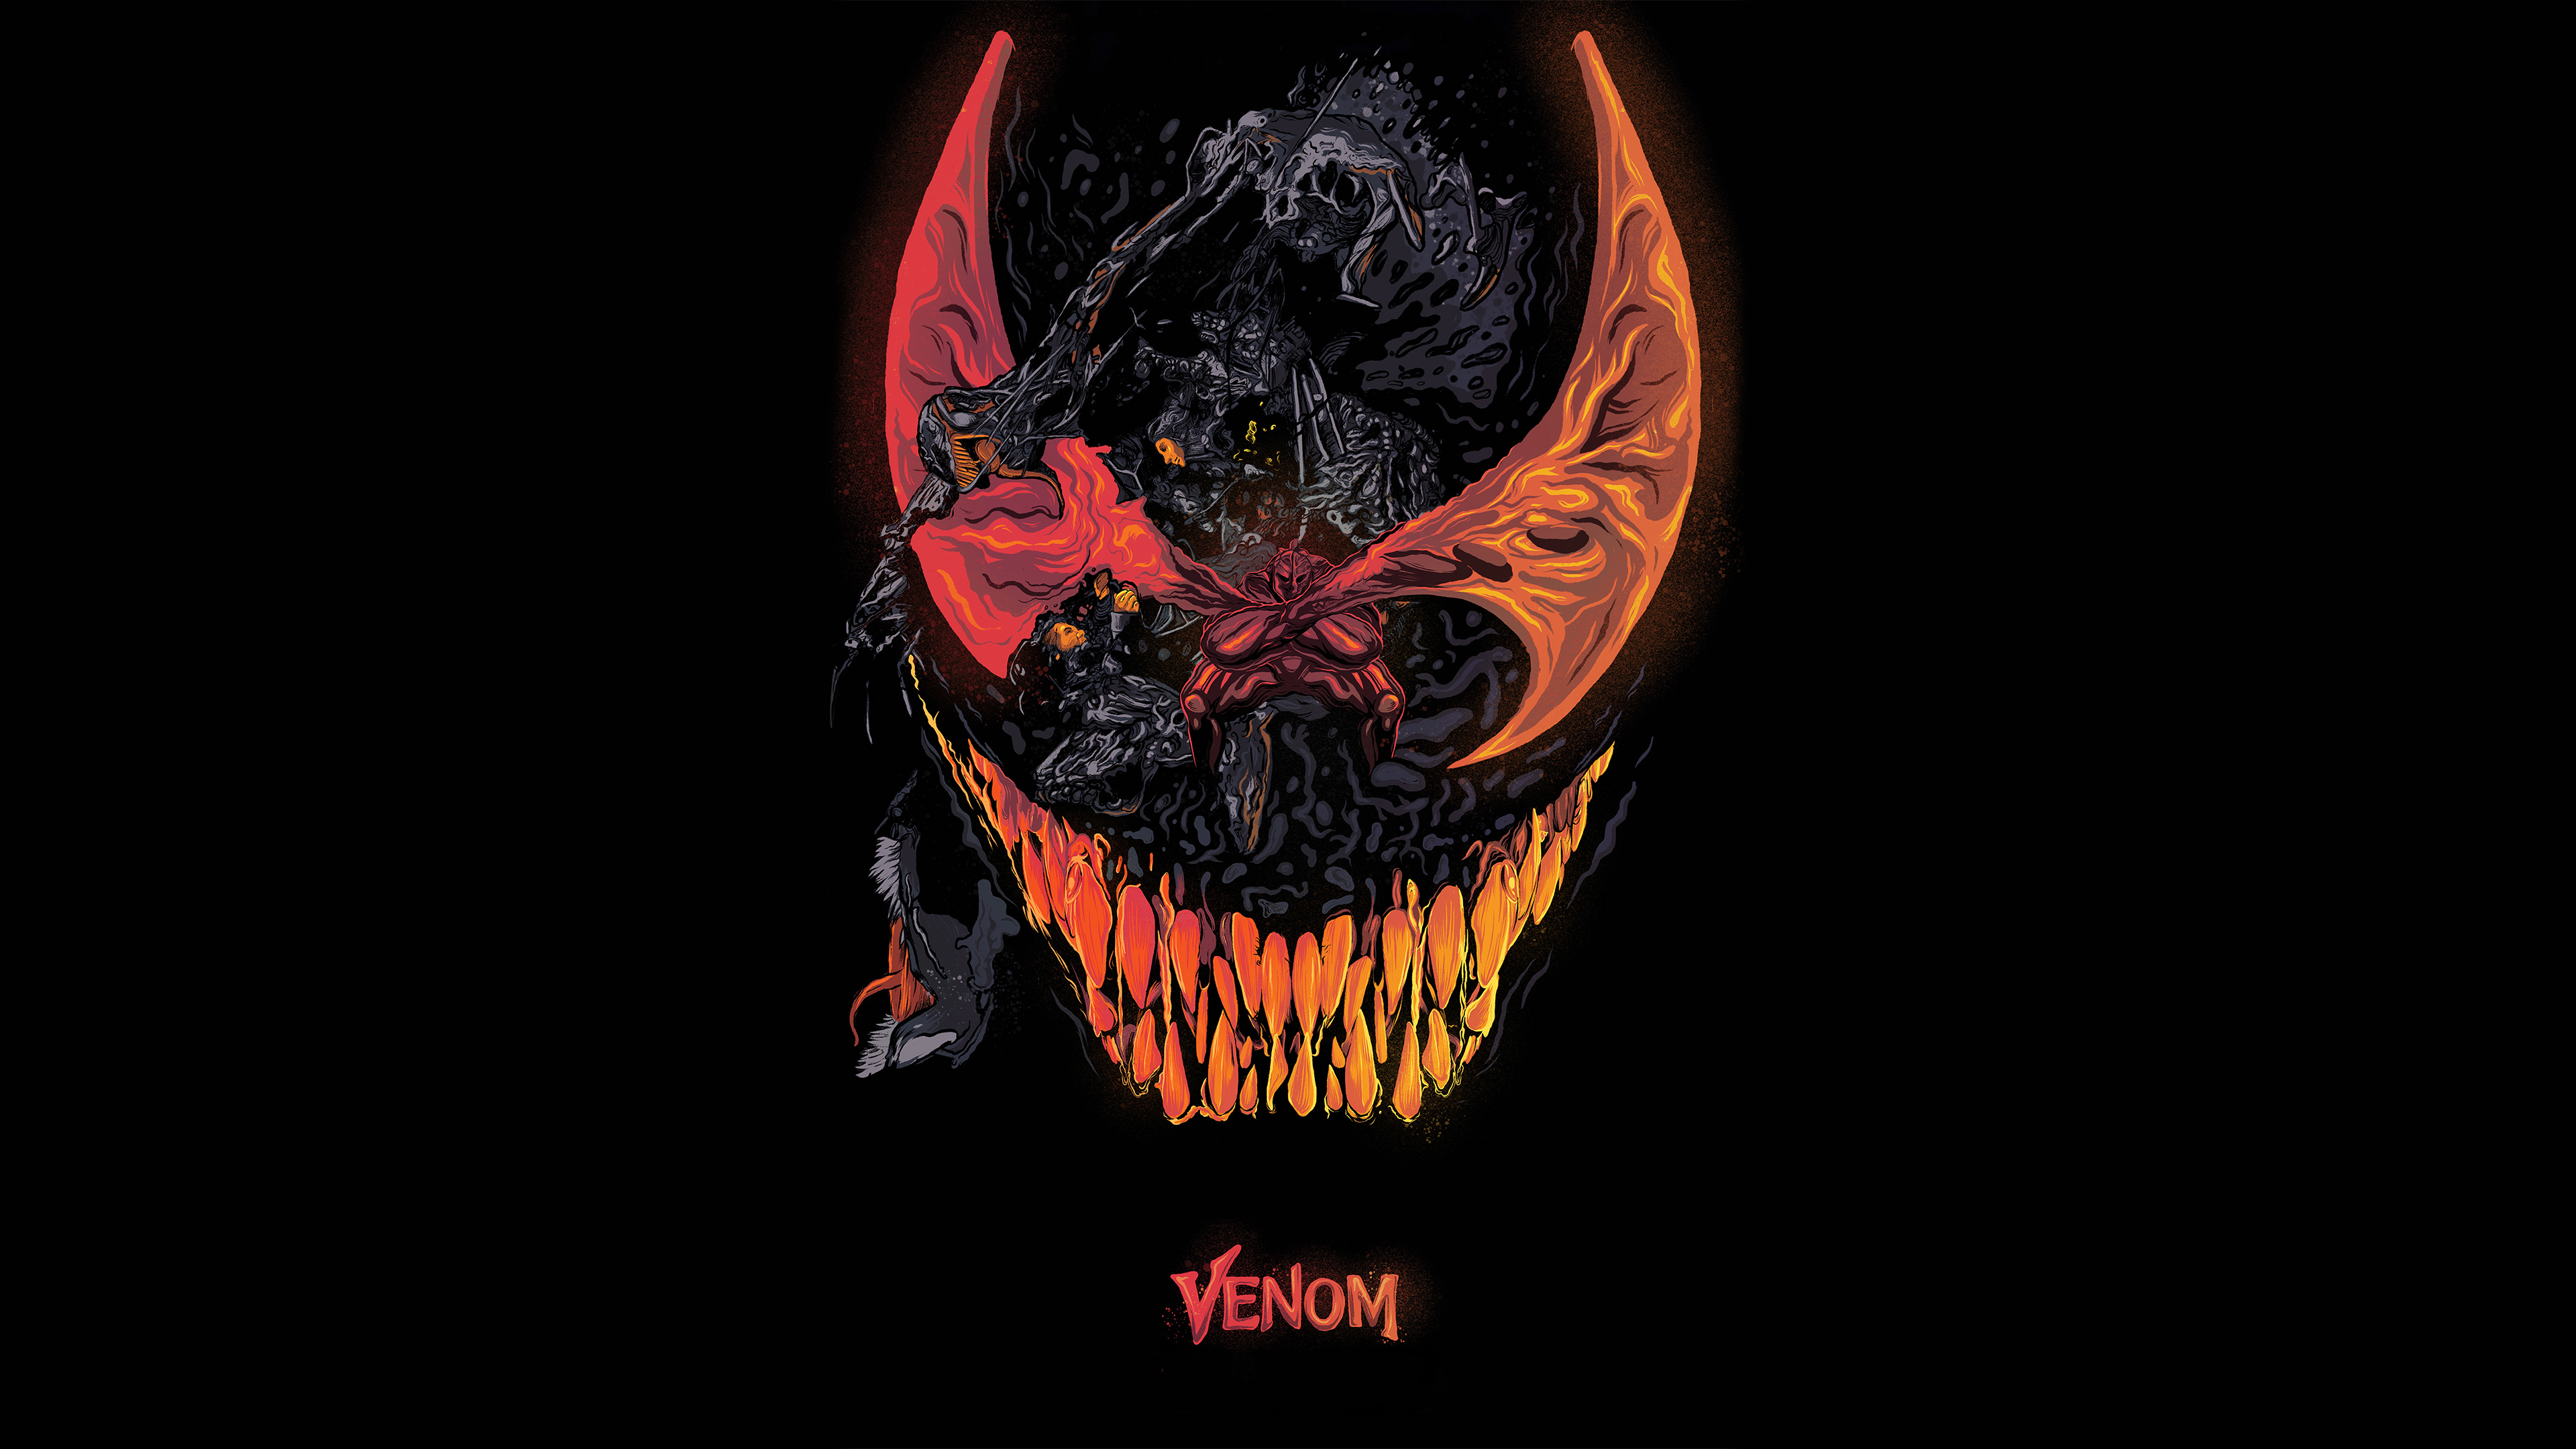 venom movie artworks 4k 1539452757 - Venom Movie Artworks 4k - Venom wallpapers, venom movie wallpapers, superheroes wallpapers, movies wallpapers, hd-wallpapers, digital art wallpapers, behance wallpapers, artwork wallpapers, artist wallpapers, 4k-wallpapers, 2018-movies-wallpapers